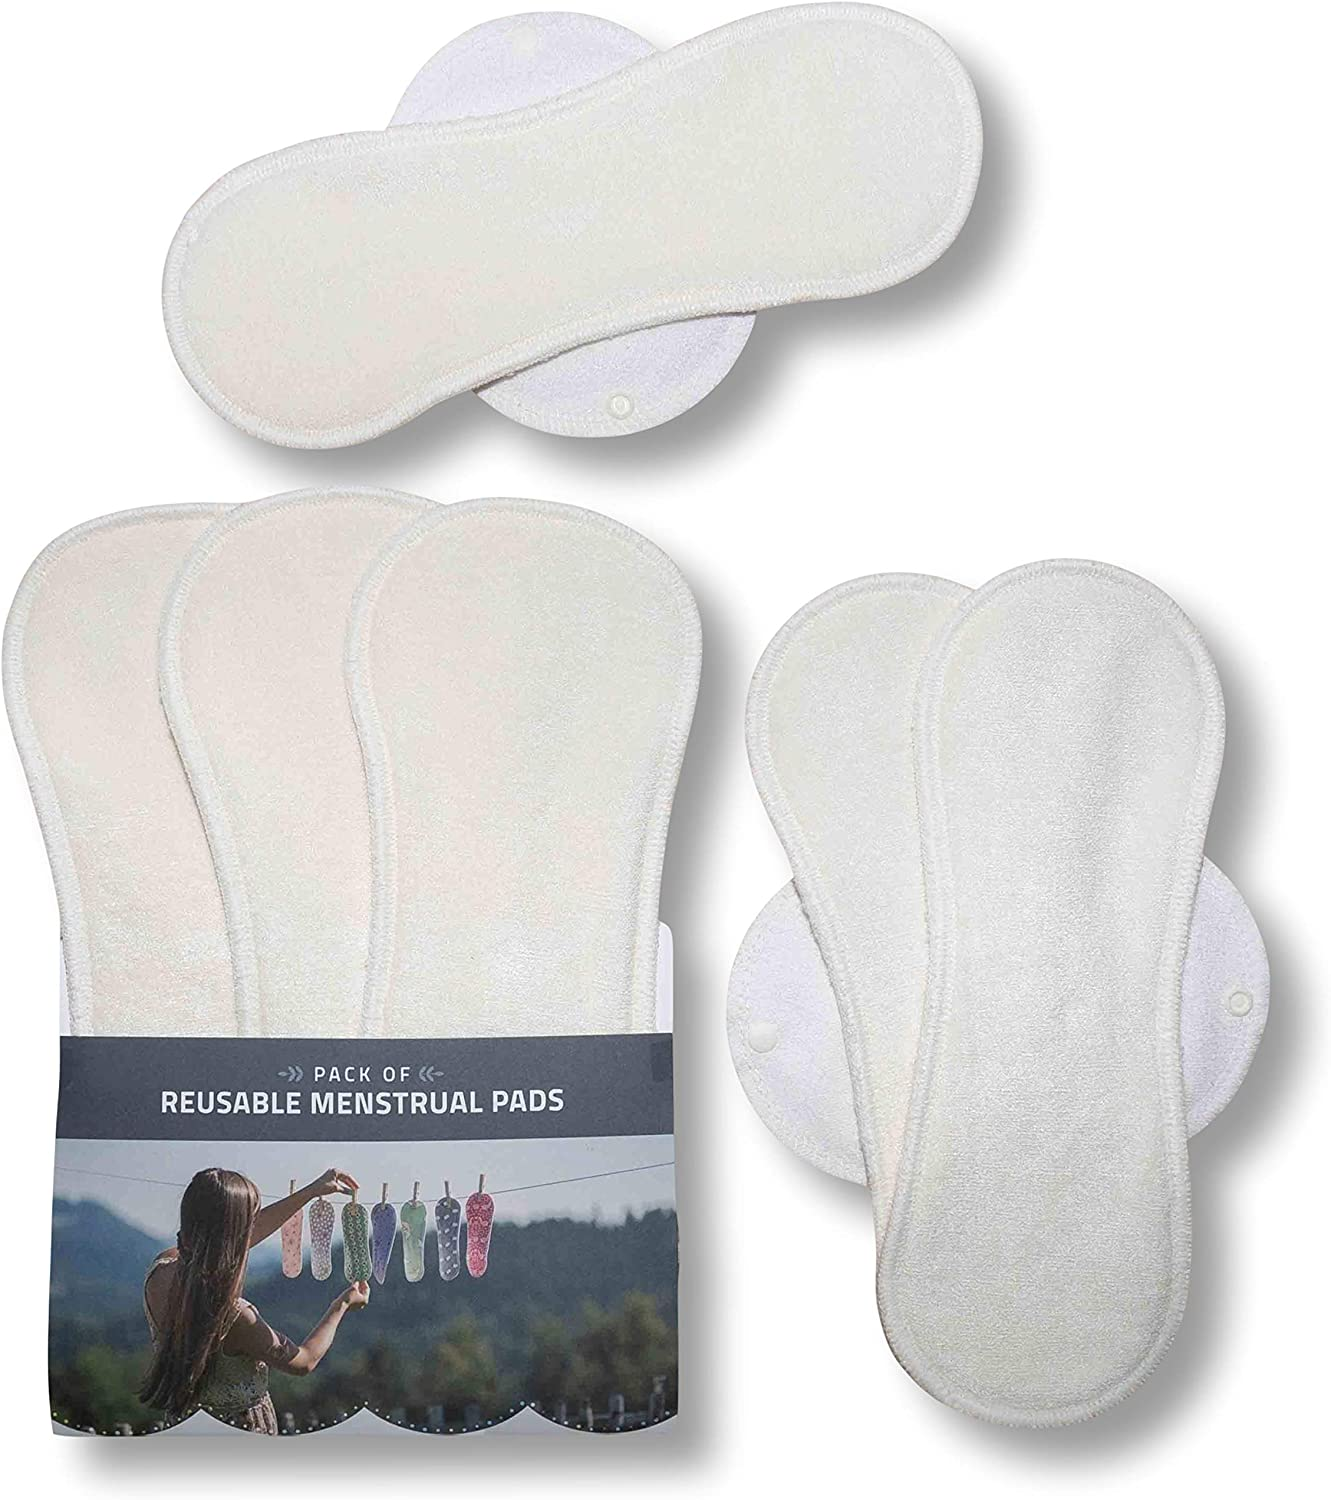 Washable Panty Liners Made in EU 6-Pack Bamboo Reusable Cloth Pads with Wings Size L /& XL Sanitary Napkins for Menstrual Periods and Incontinence; w//o Chemicals for Women Reusable Sanitary Towels